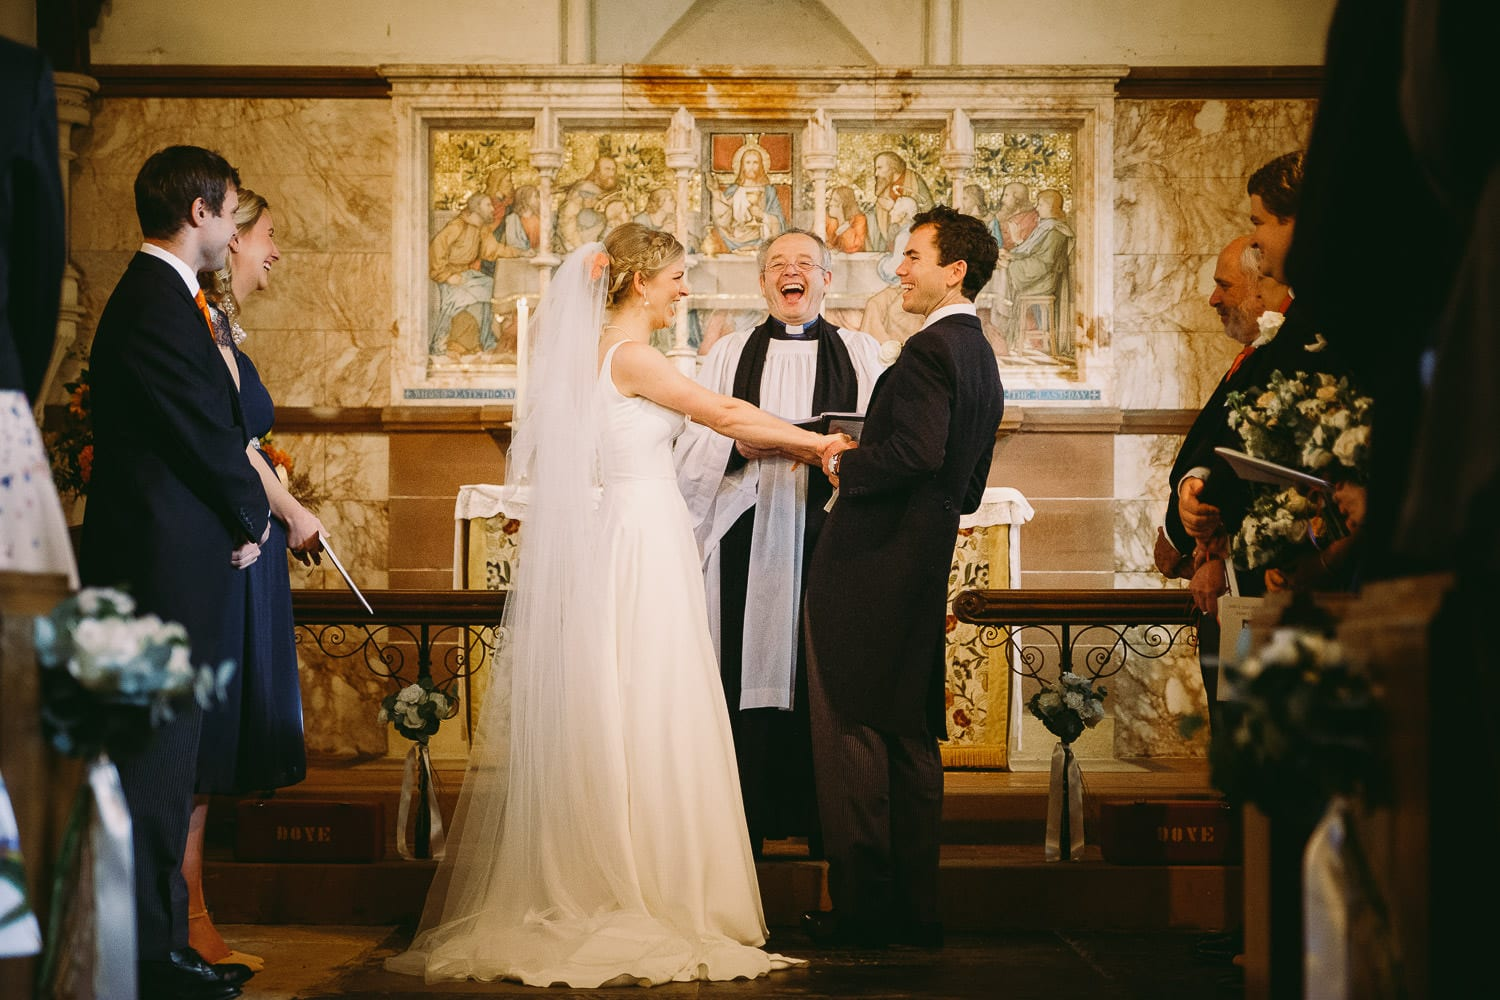 The vicar laughs when the groom mixes his words